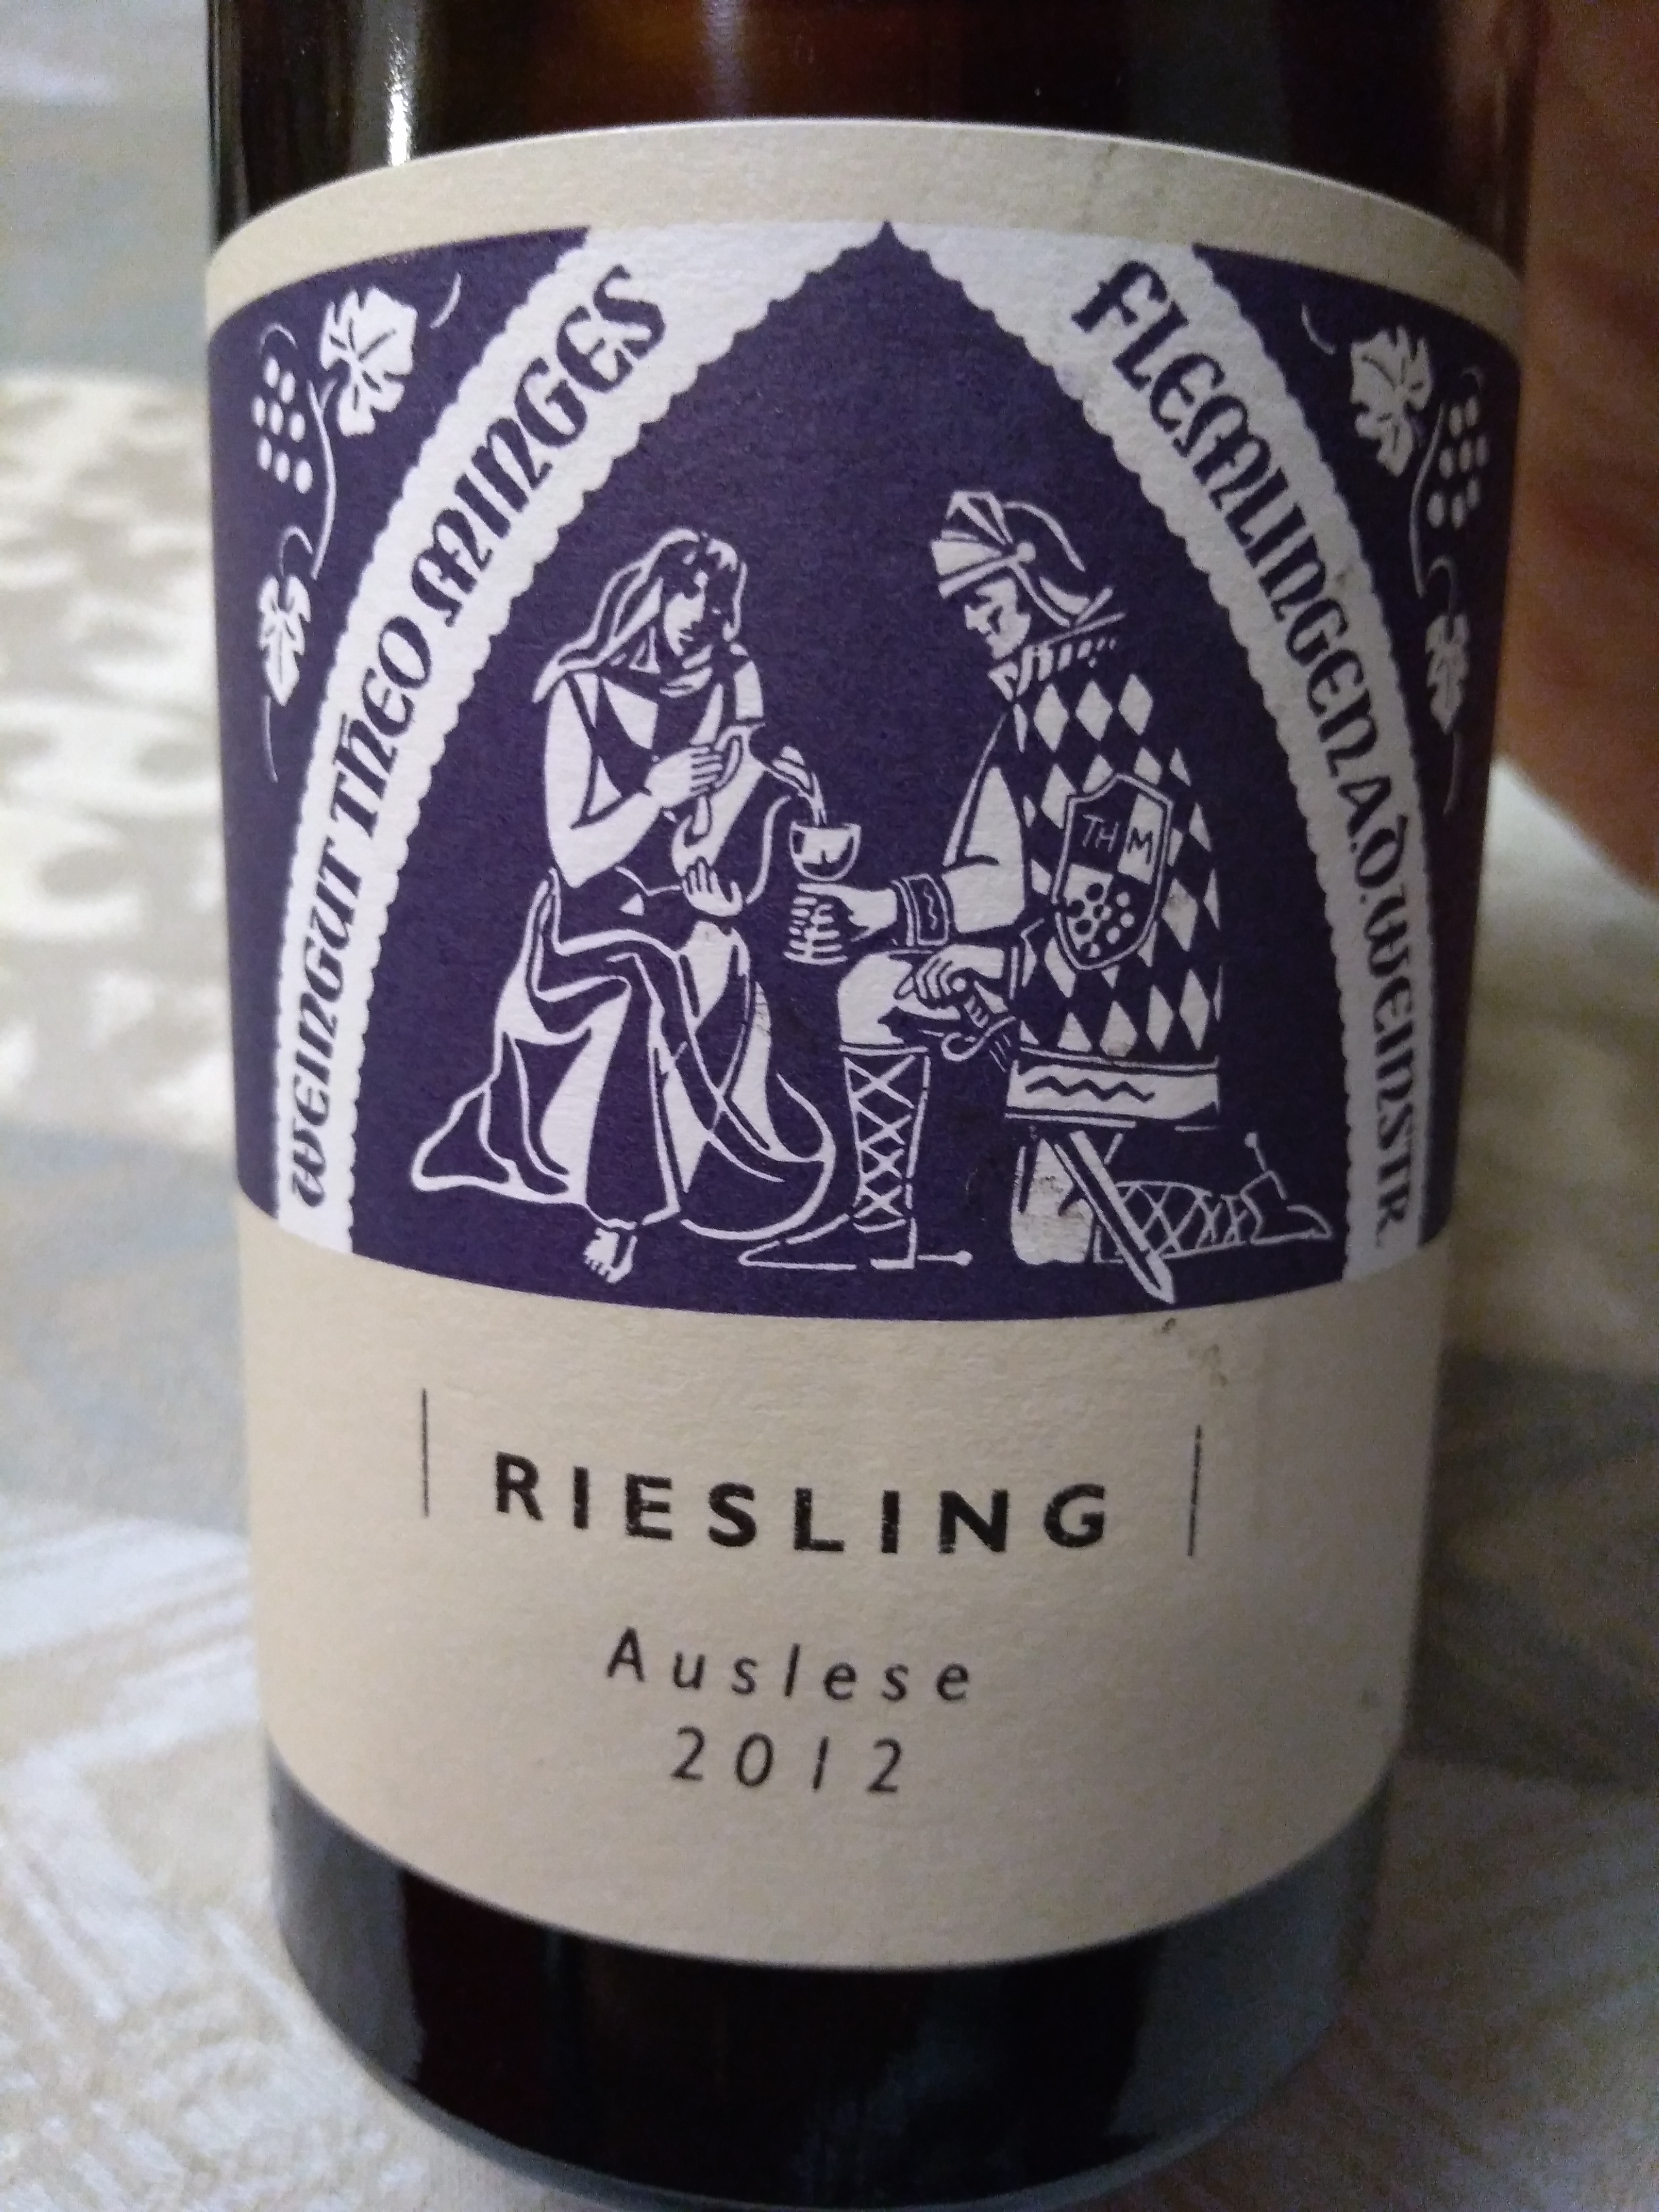 Pfalz Riesling Auslese 2012 - Theo Minges